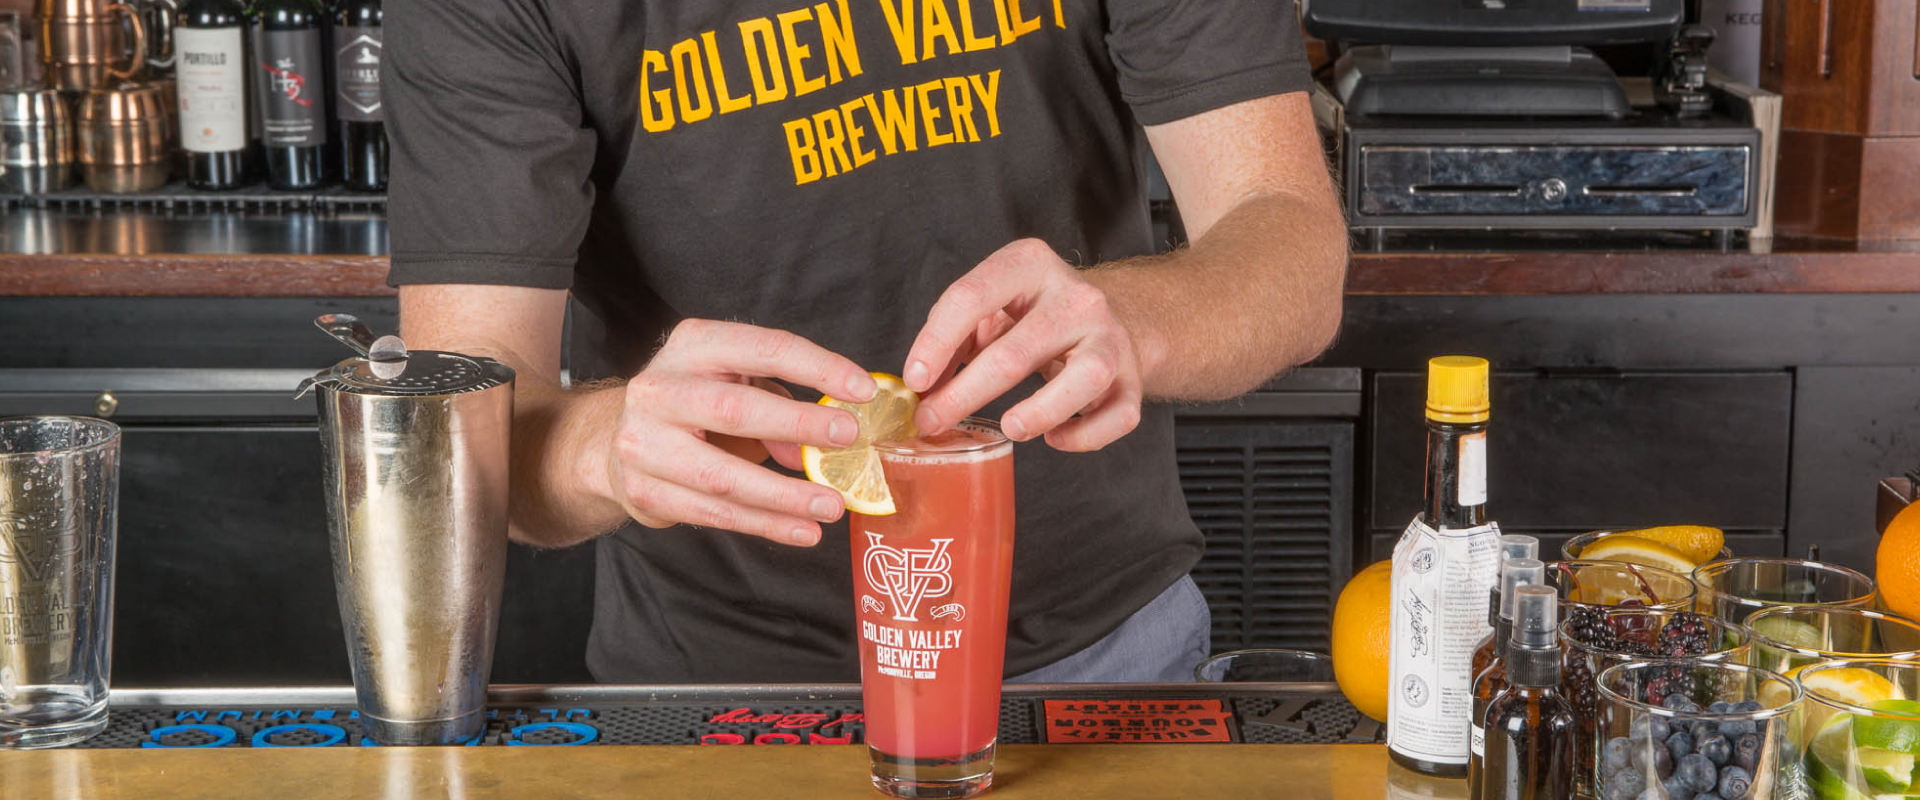 In addition to beer, Golden Valley Brewery & Restaurant features a full bar with siganture cocktails.